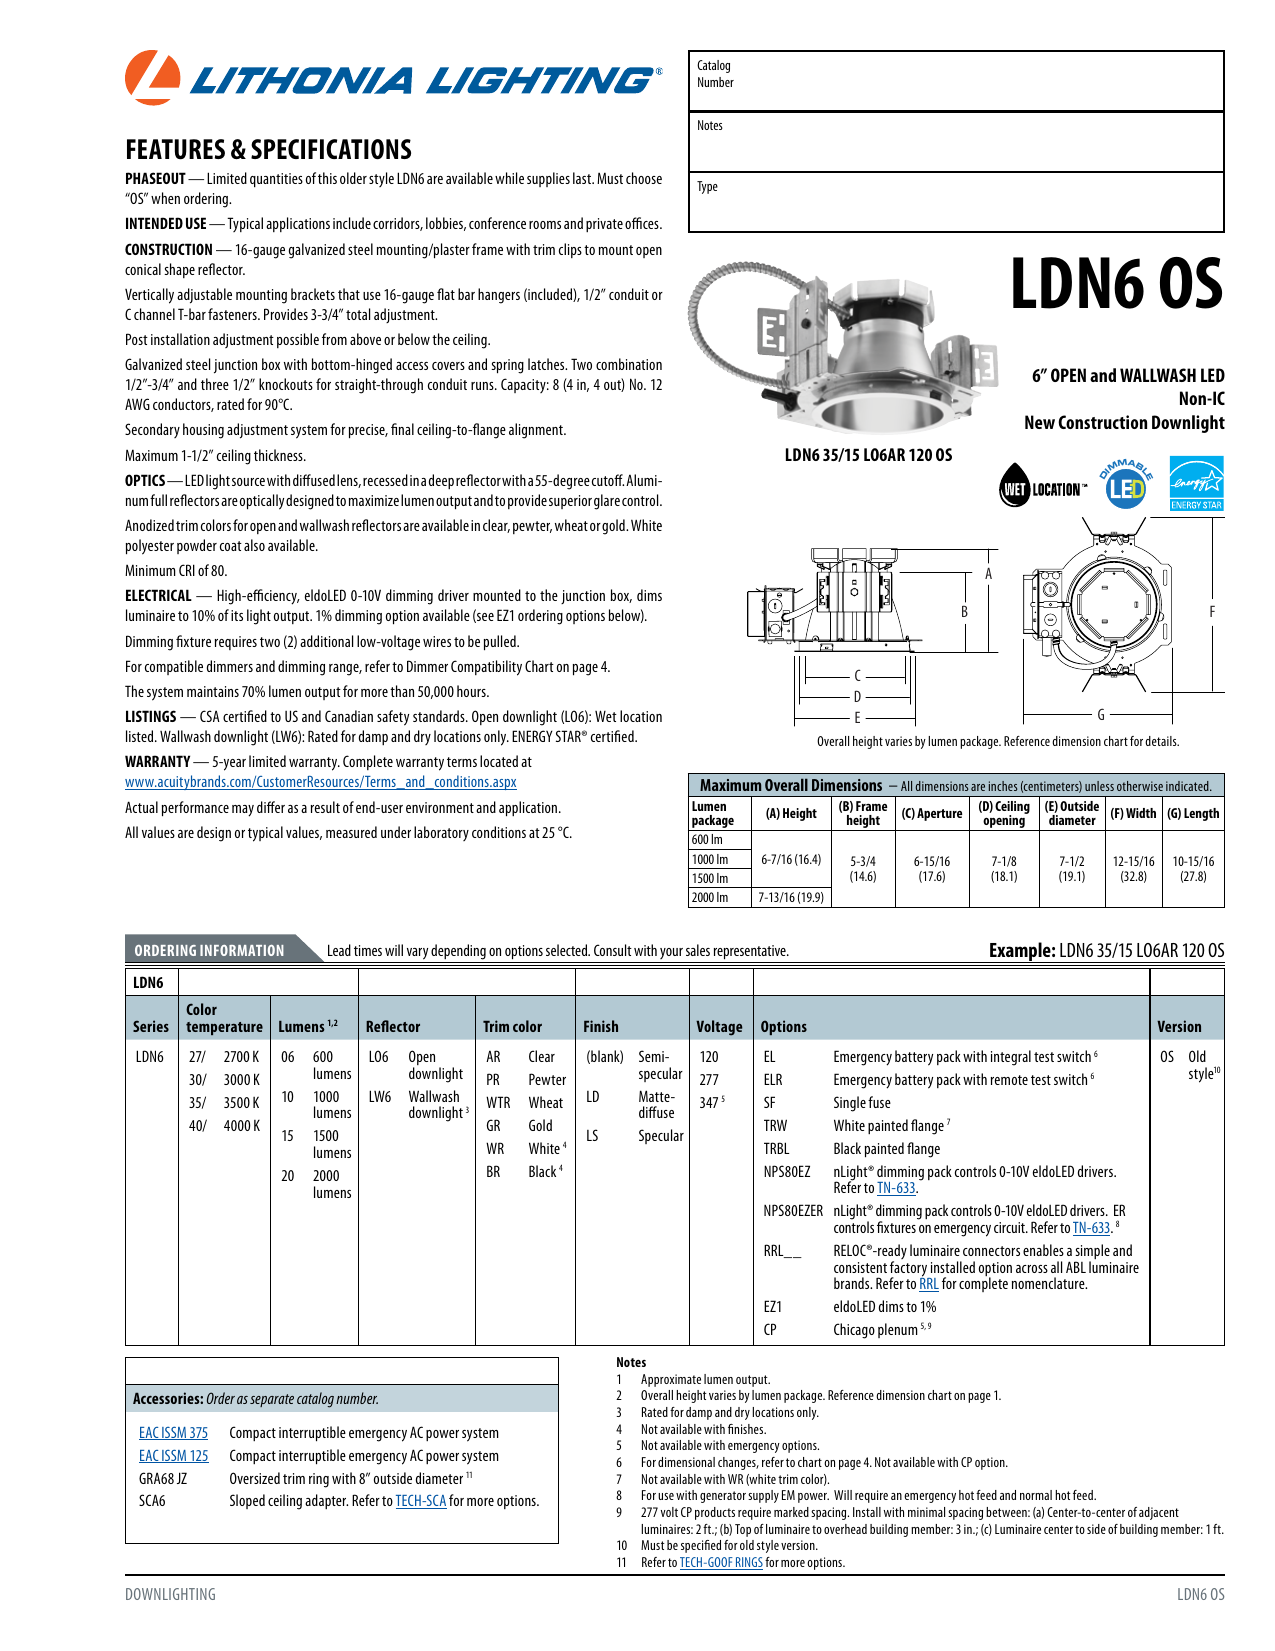 Ldn6 Os Acuity Brands Light Switch Wiring Diagram Additionally Leviton 0 10v Led Dimmers